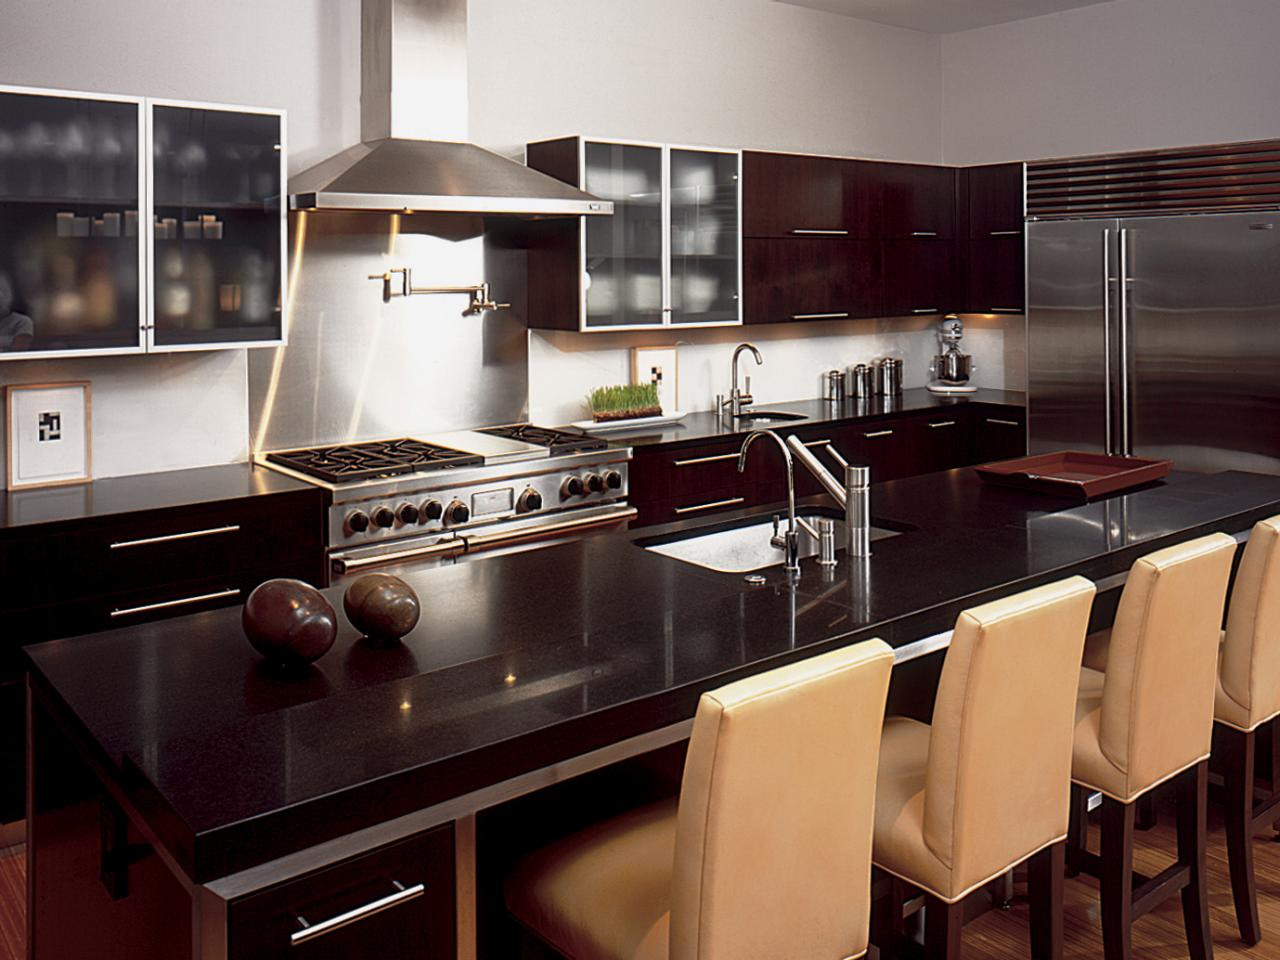 Kitchen Counter Ideas Stunning Cheap Kitchen Countertops Pictures Options & Ideas  Hgtv Review